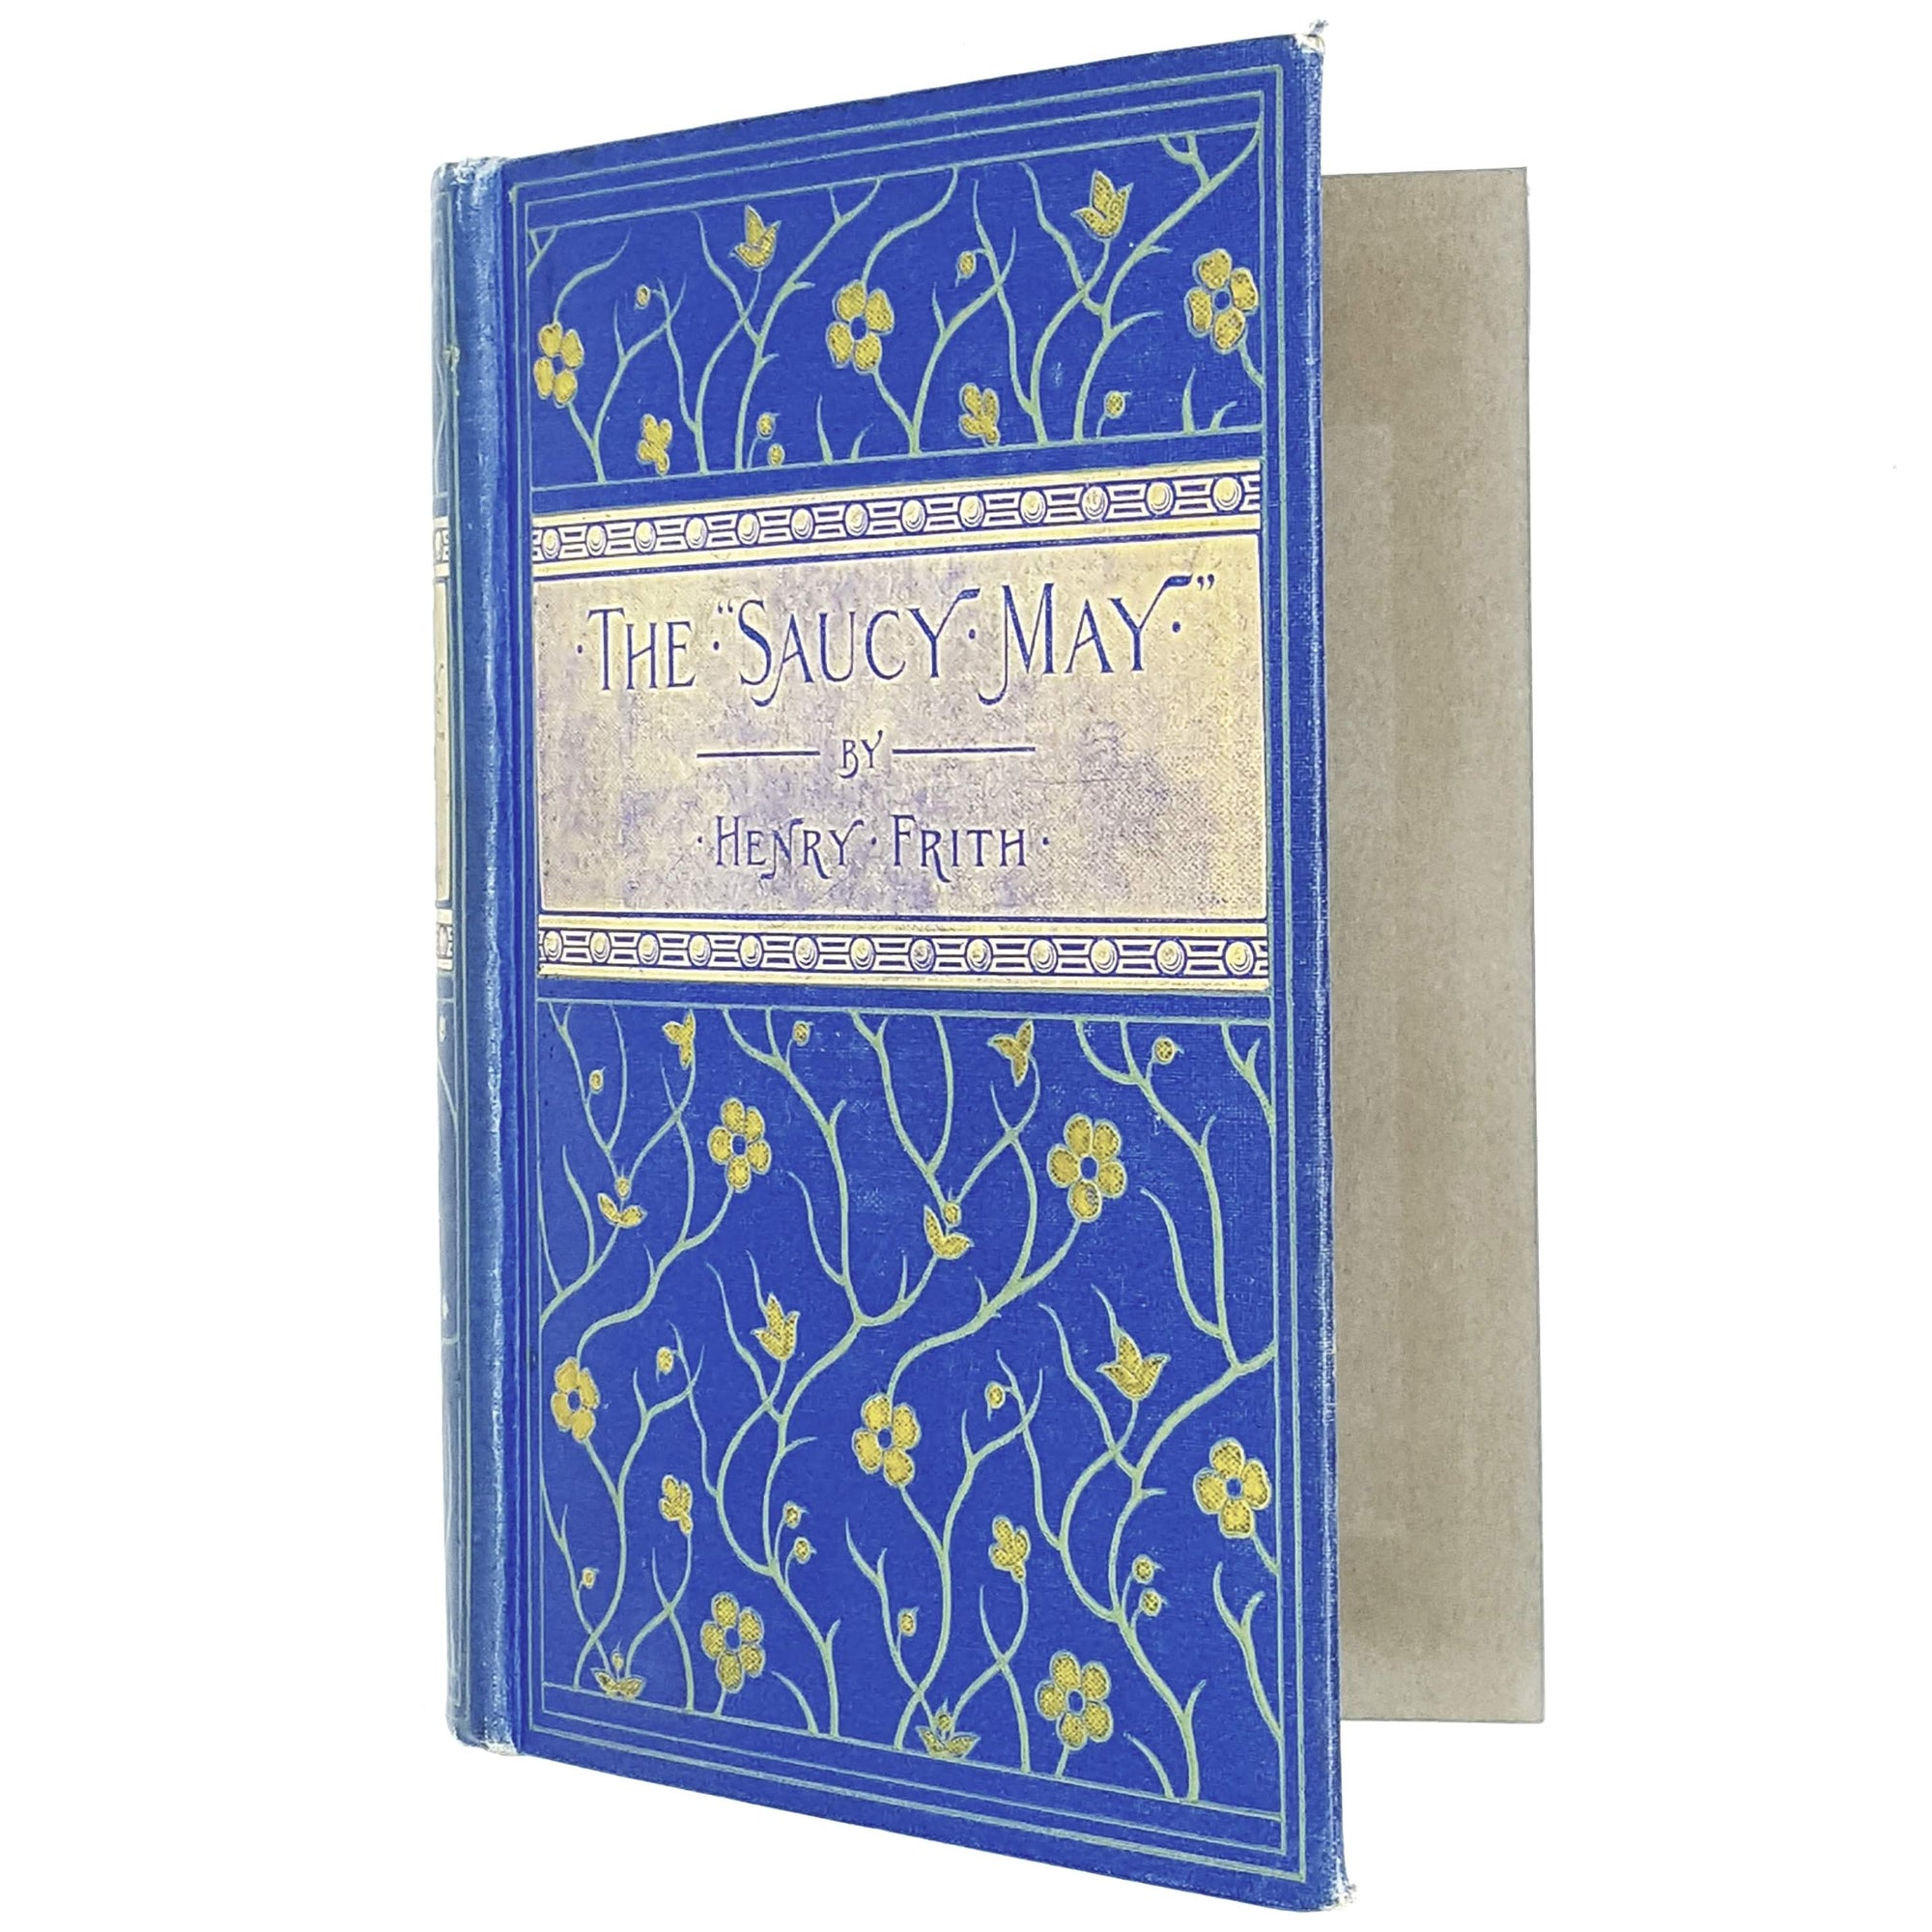 Illustrated The Saucy May by Henry Frith c1905